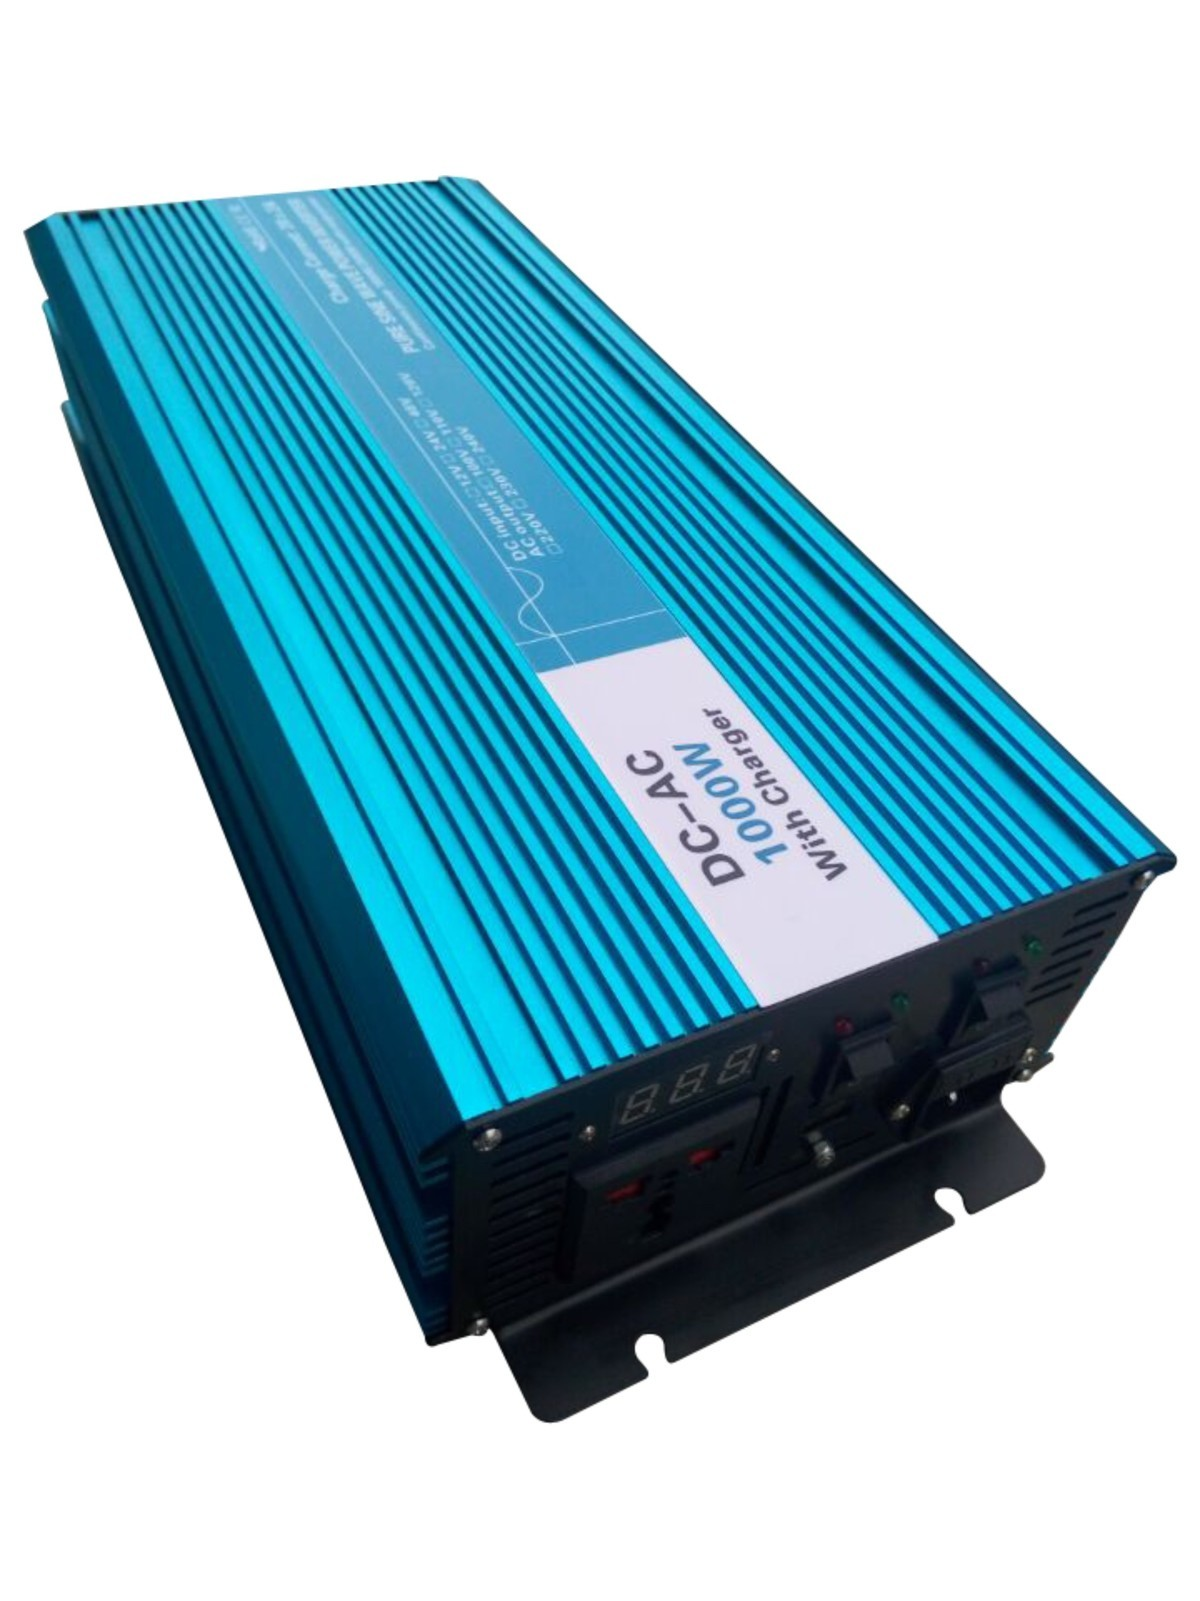 1000W Pure Sine Wave Inverter,DC 12V/24V/48V To AC 110V/220V,off Grid Solar power Inverter,voltage Converter with charger/UPS 1200w pure sine wave inverter dc 12v 24v 48v to ac 110v 220v off grid solar power inverter voltage converter for home battery